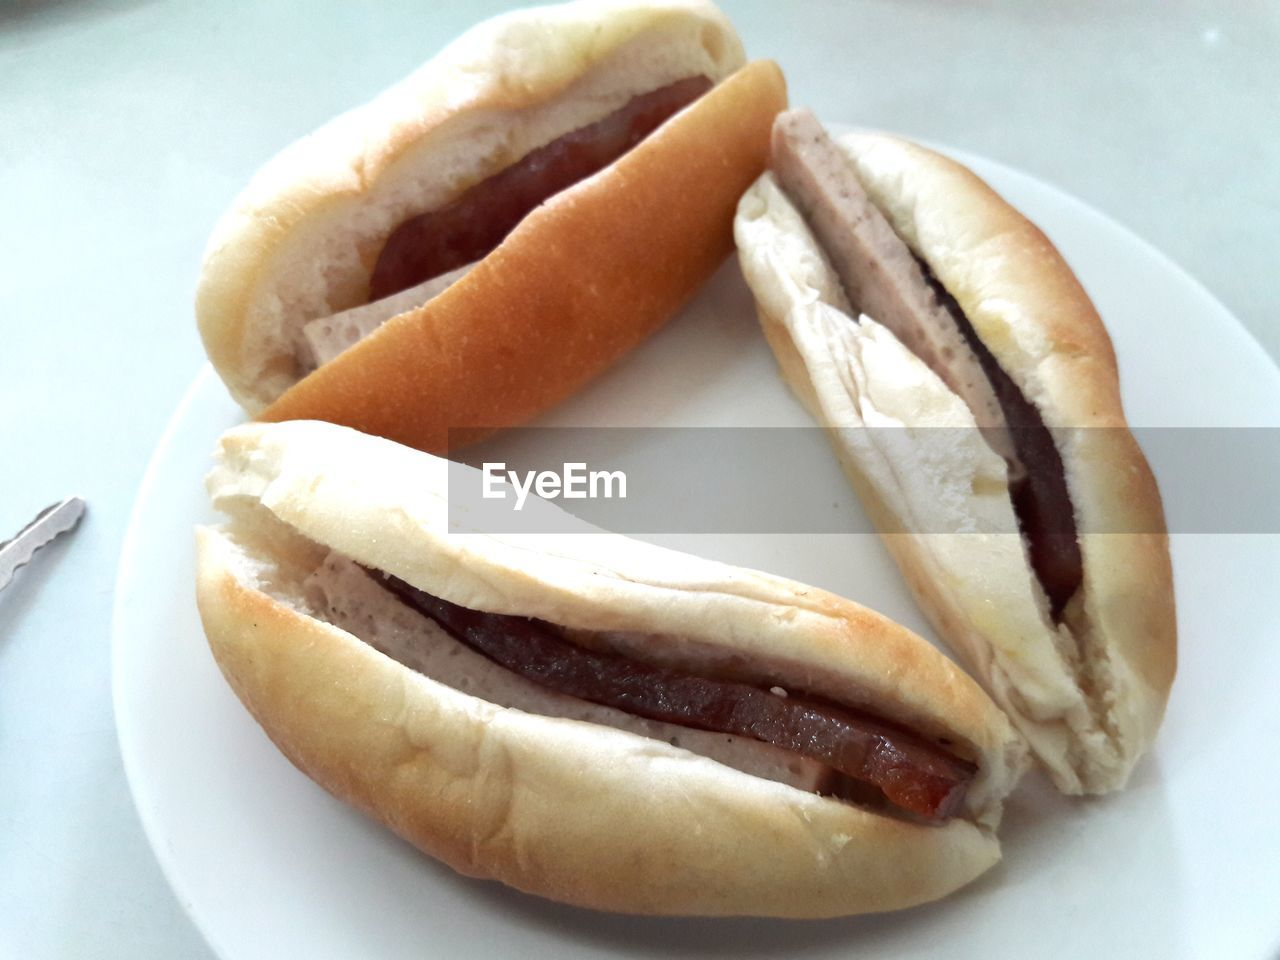 food and drink, food, sausage, hot dog, still life, bread, bun, ready-to-eat, plate, unhealthy eating, mustard, freshness, close-up, processed meat, indoors, no people, day